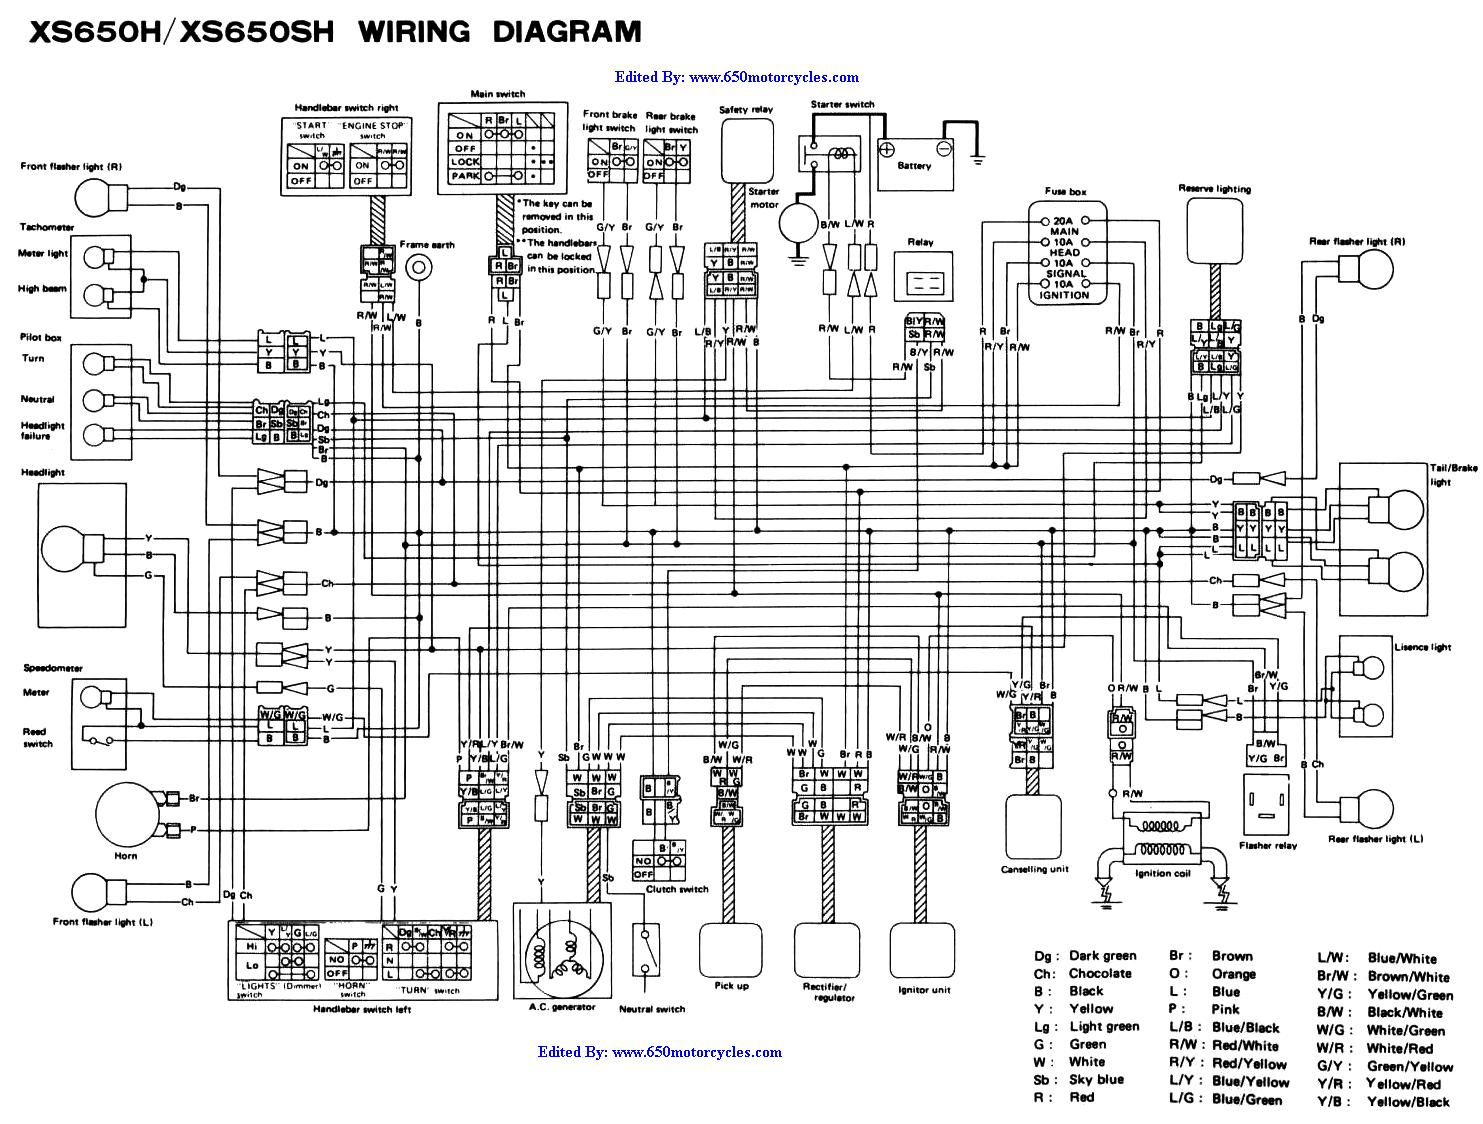 Xs650 Chopper Wiring Diagrams - Xs650 Wiring Diagram